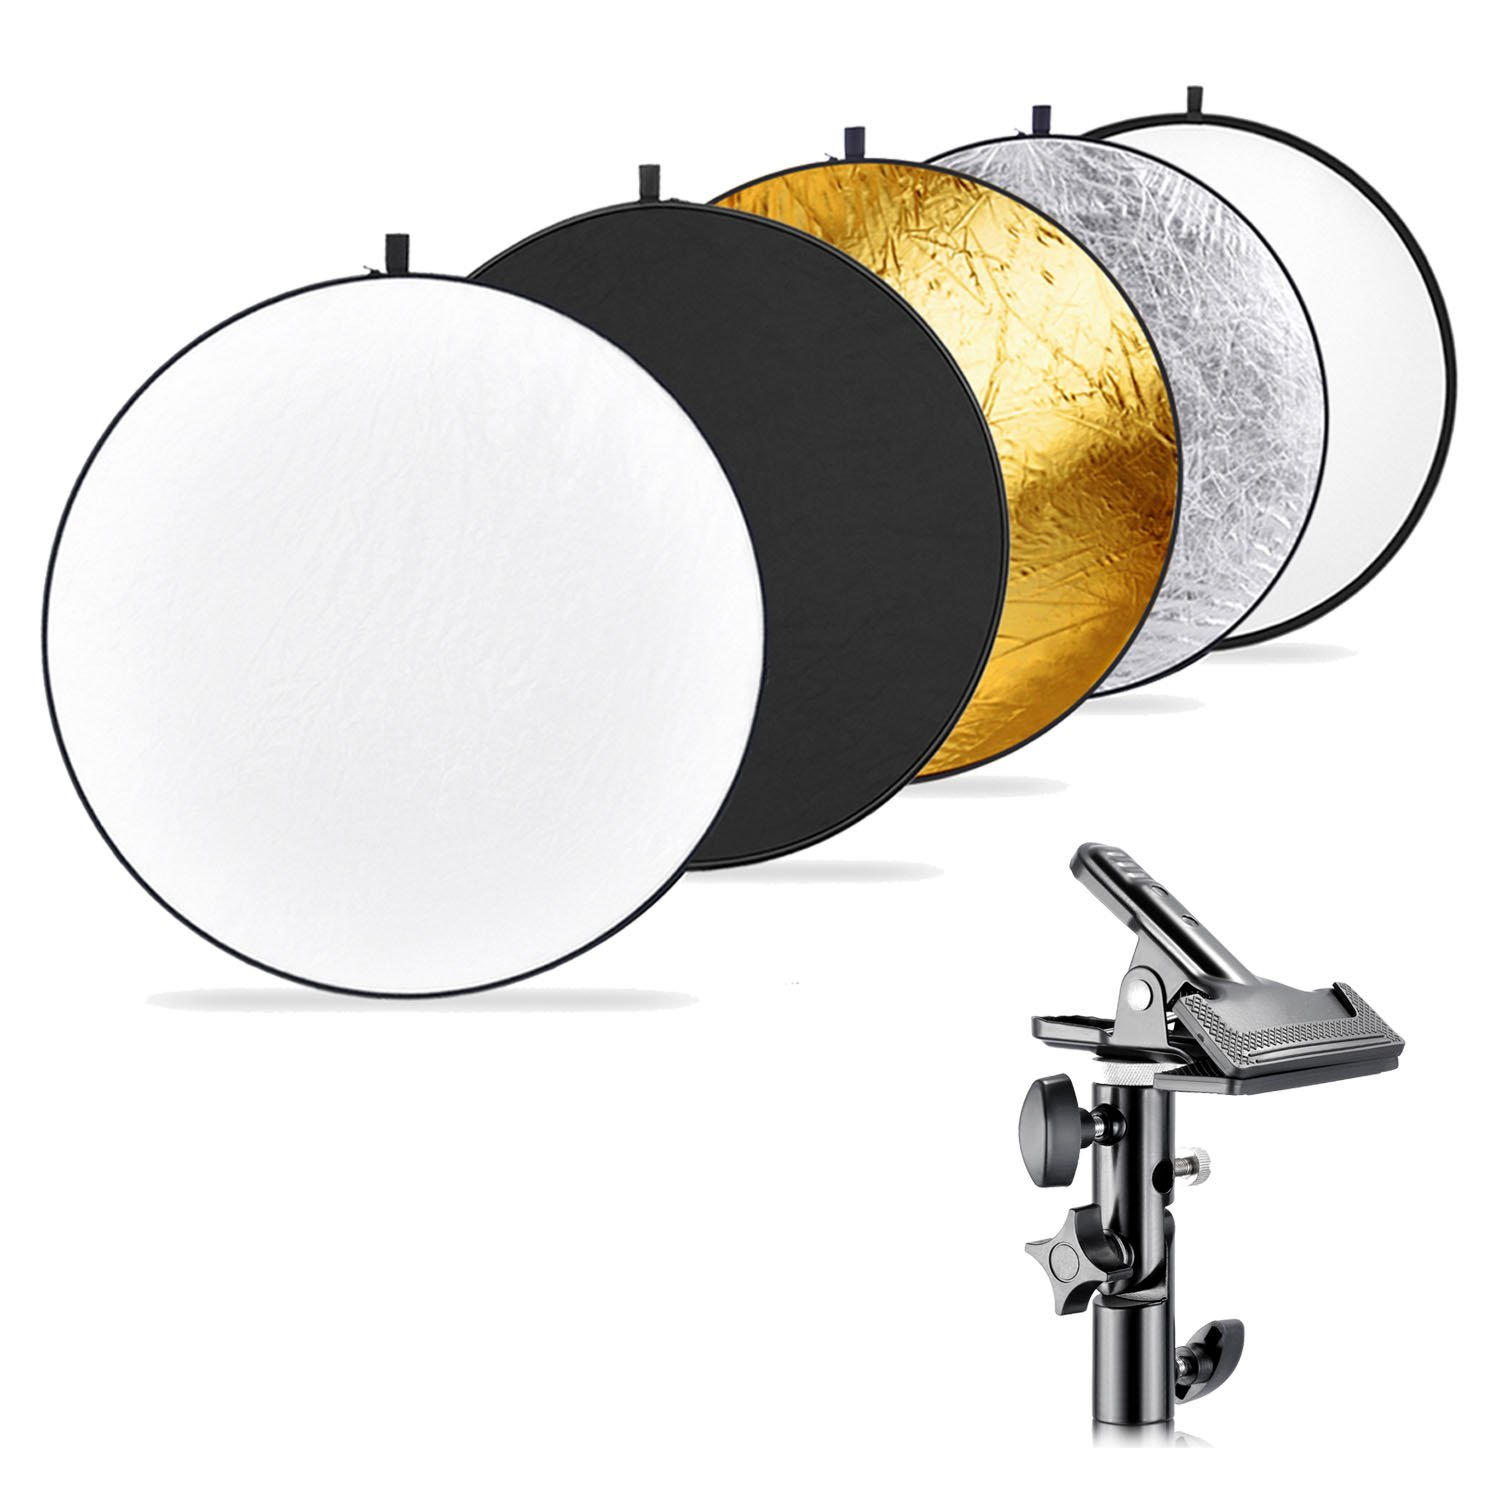 Neewer Photography 5-in-1 Multi-Disc Light Reflector (43 inches/110 centimeters) with Heavy-duty Metal Clamp Holder for Photo Studio Shooting,Collapsible Reflector Translucent/Silver/Gold/White/Black by Neewer